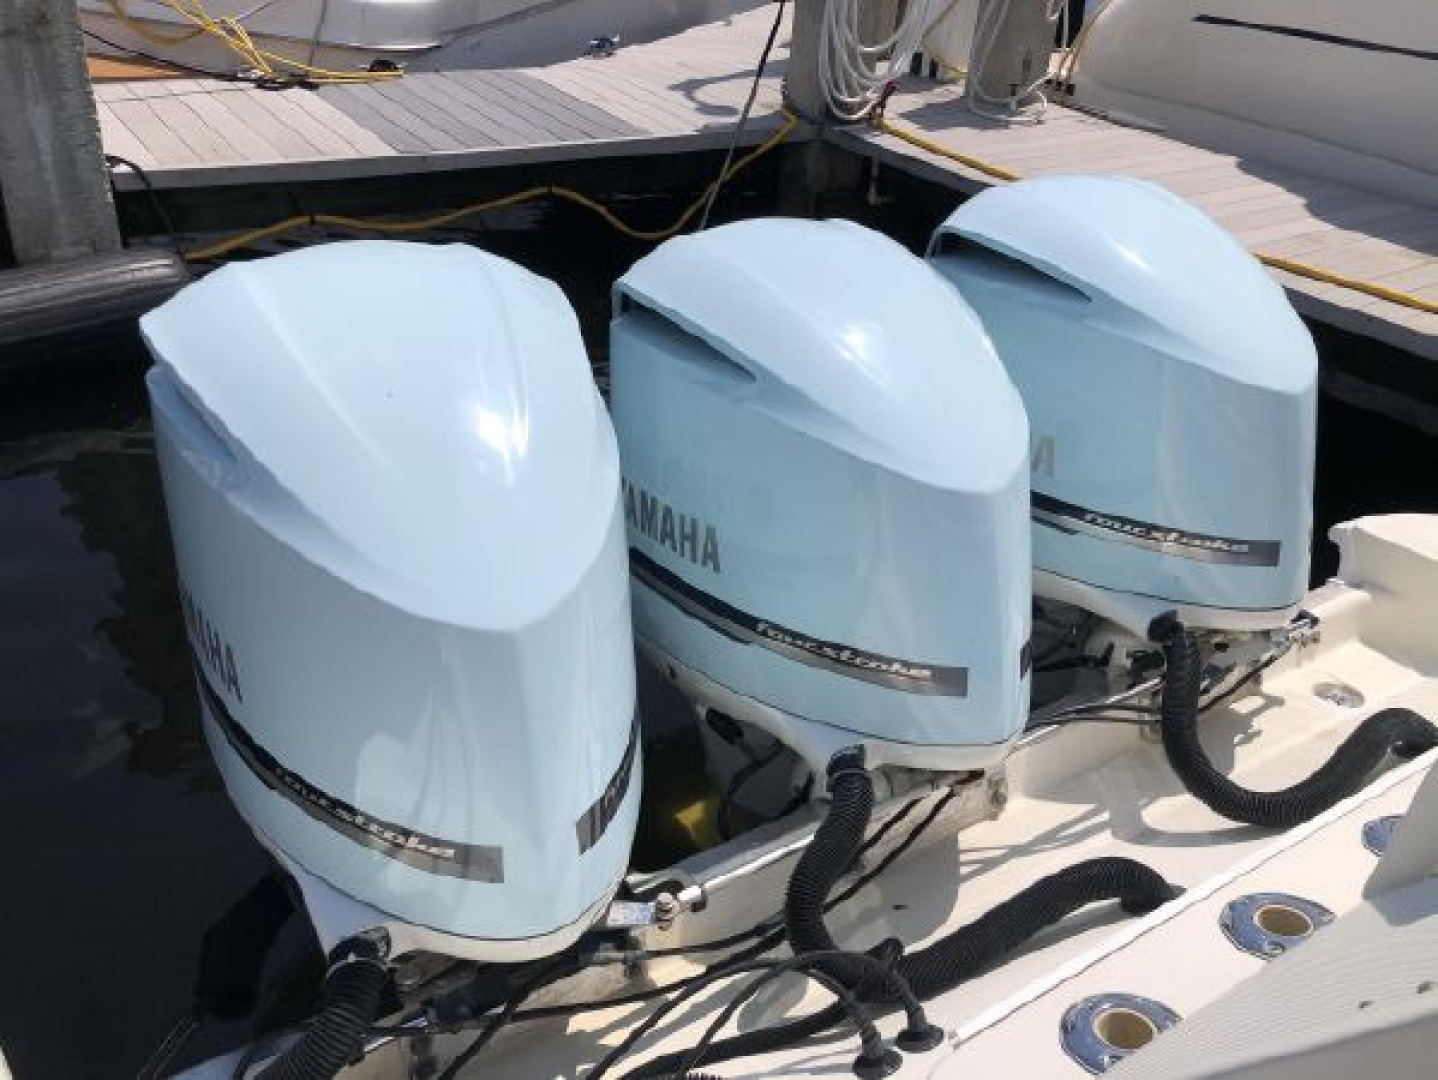 Hydra-Sports-42 Center Console 4200 SF 2011 -Fort Lauderdale-Florida-United States-1564145 | Thumbnail